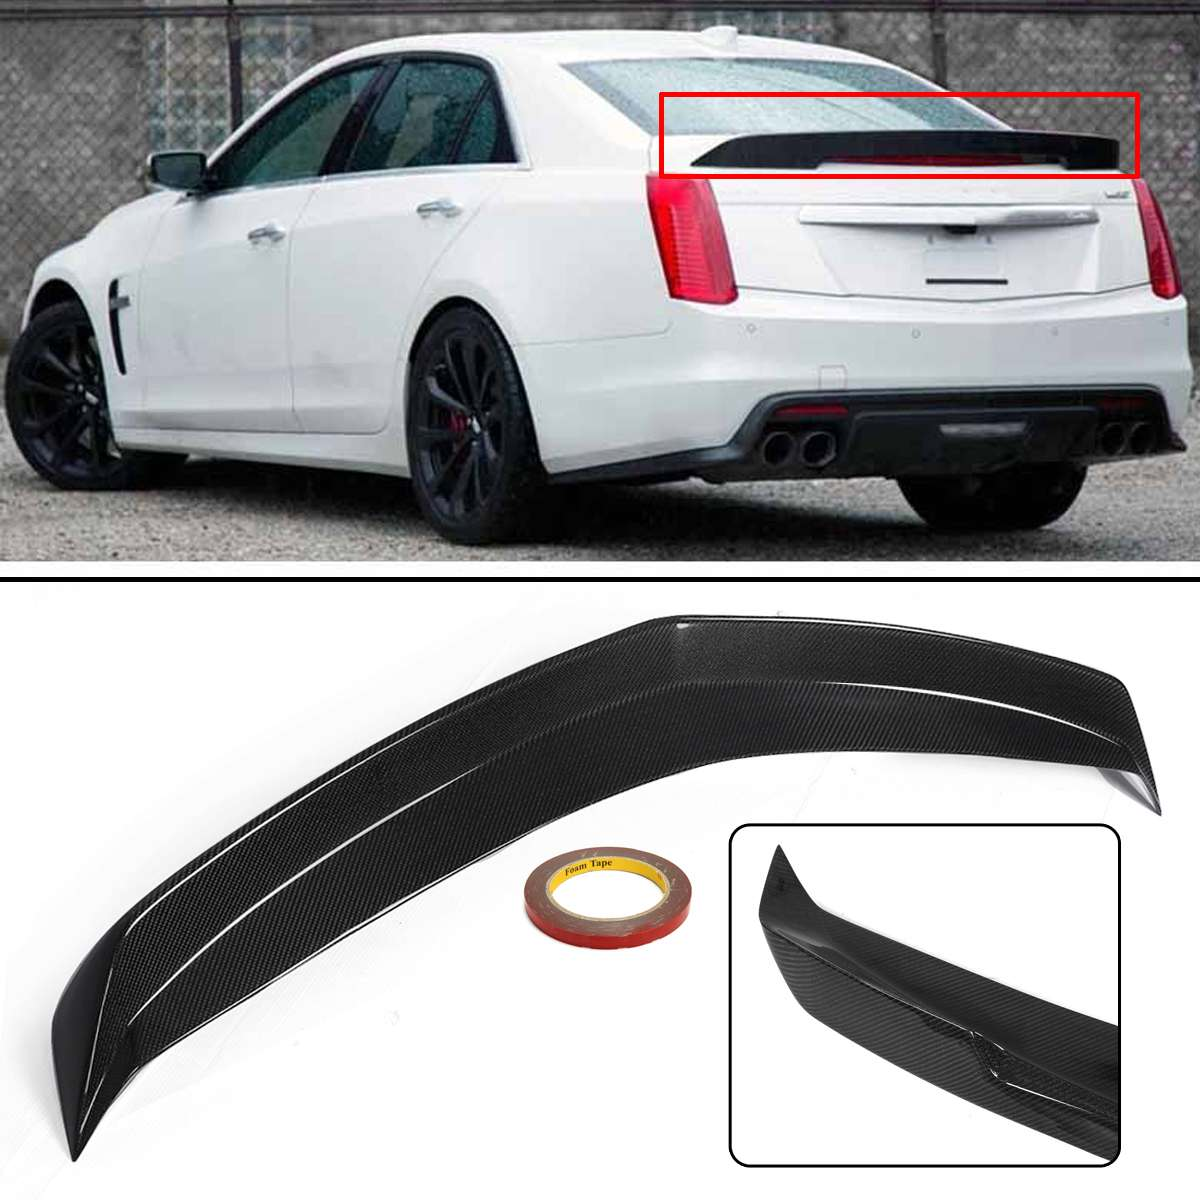 Carbon Fiber Package Rear Trunk Lid Spoiler Wing Lip Wing Lid Spoiler for Cadillac CTS-V 16-UpCarbon Fiber Package Rear Trunk Lid Spoiler Wing Lip Wing Lid Spoiler for Cadillac CTS-V 16-Up